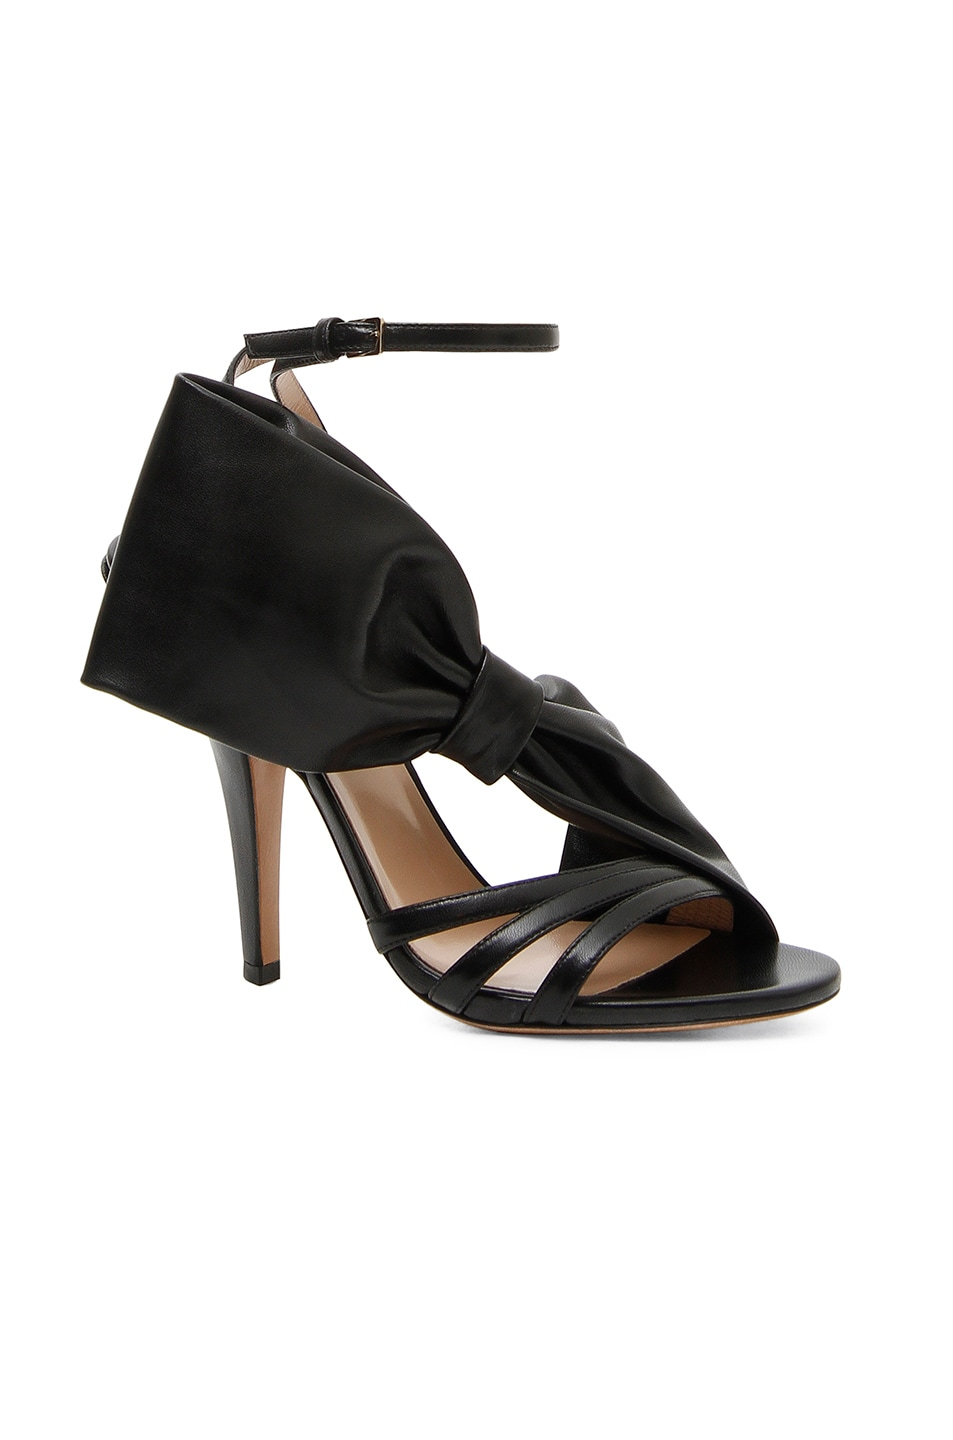 64e881d3e Image 1 of Valentino Leather Side Bow Ankle Strap Sandals in Black